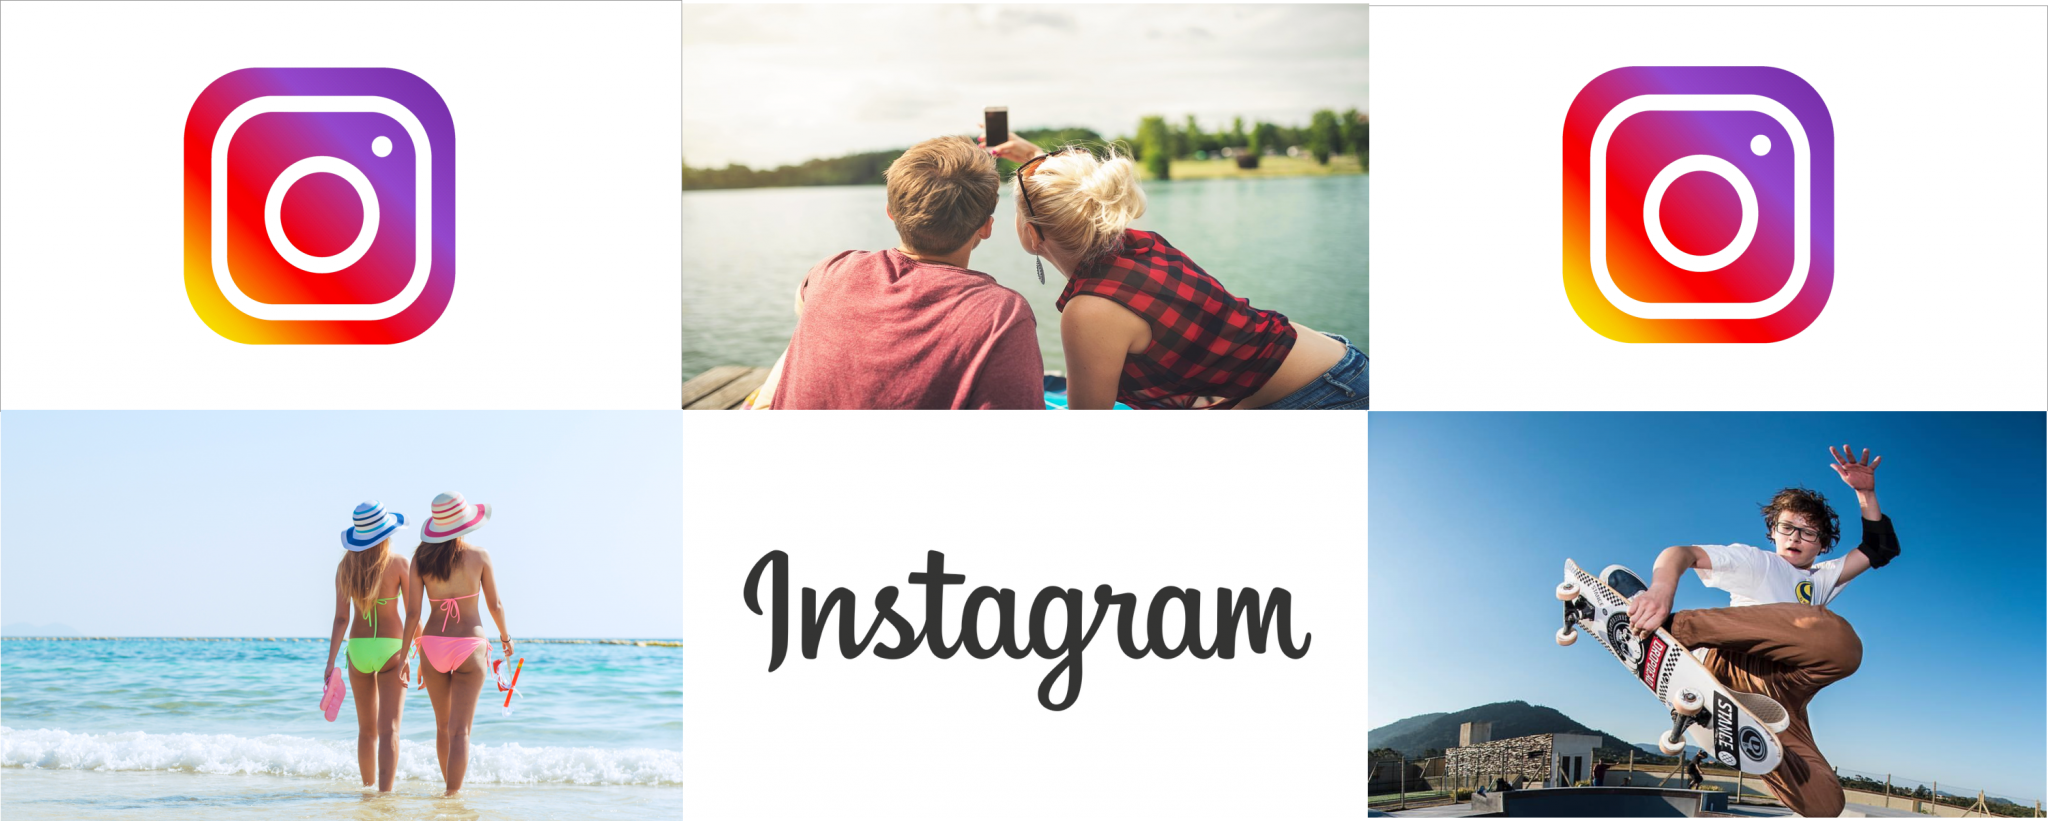 guide, instagram,hashtag